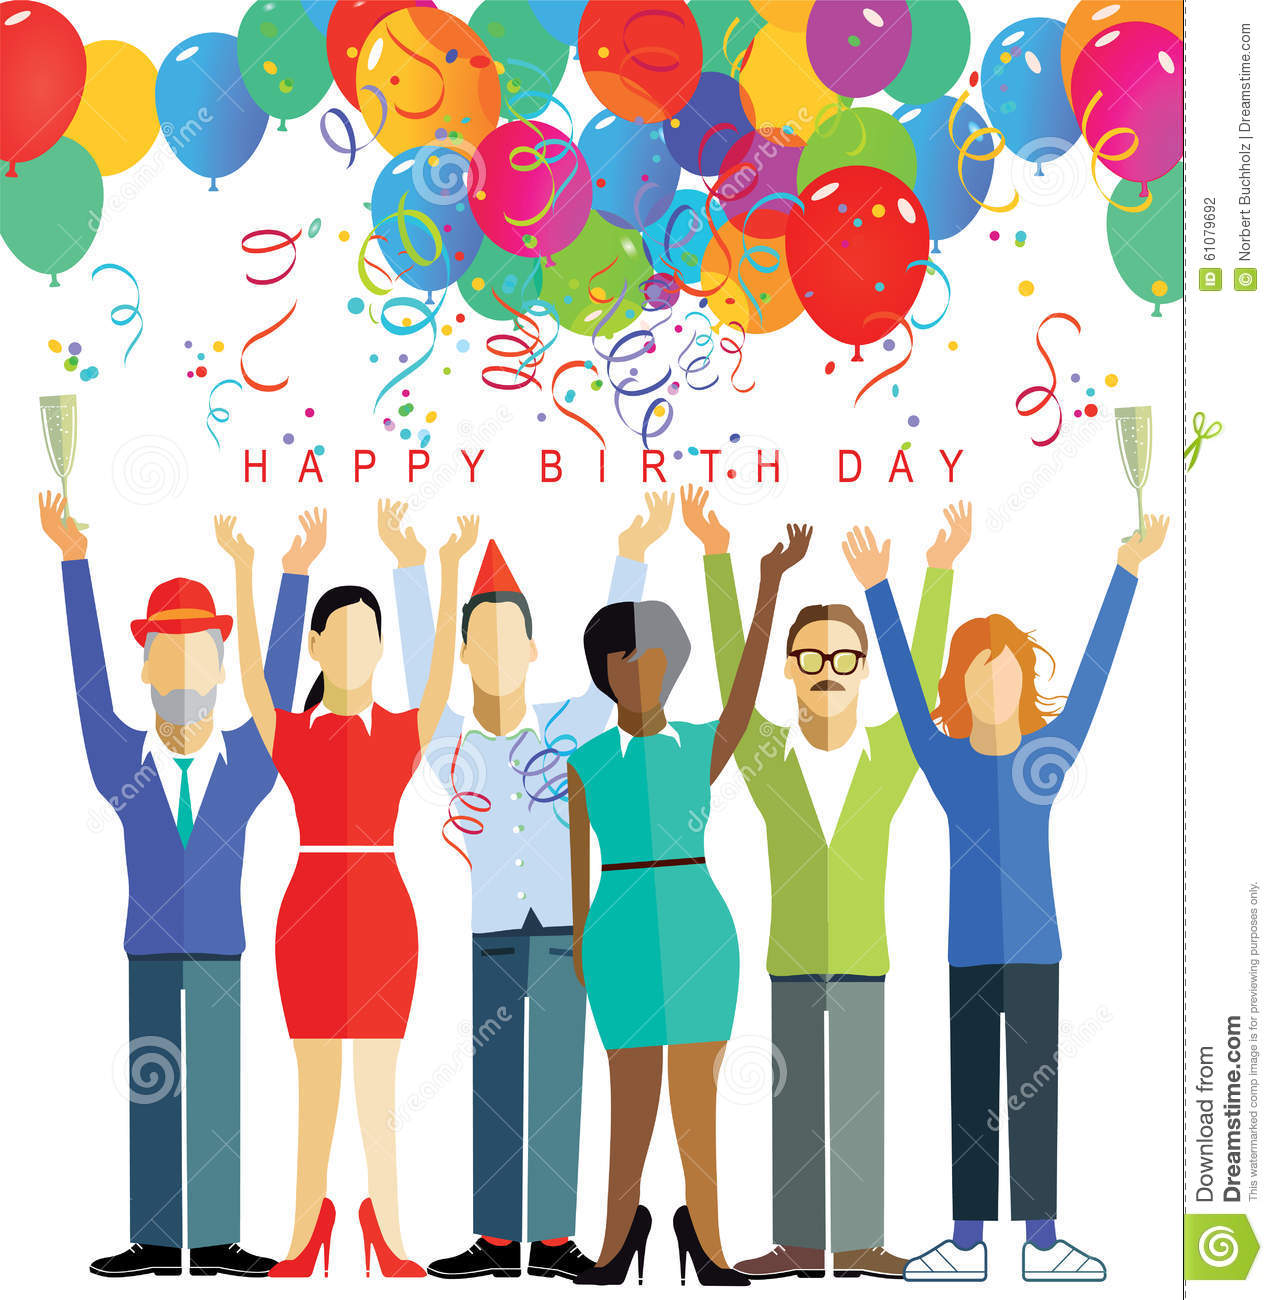 happy birthday party stock photo image 61079692 vector balloons free vector balloons free